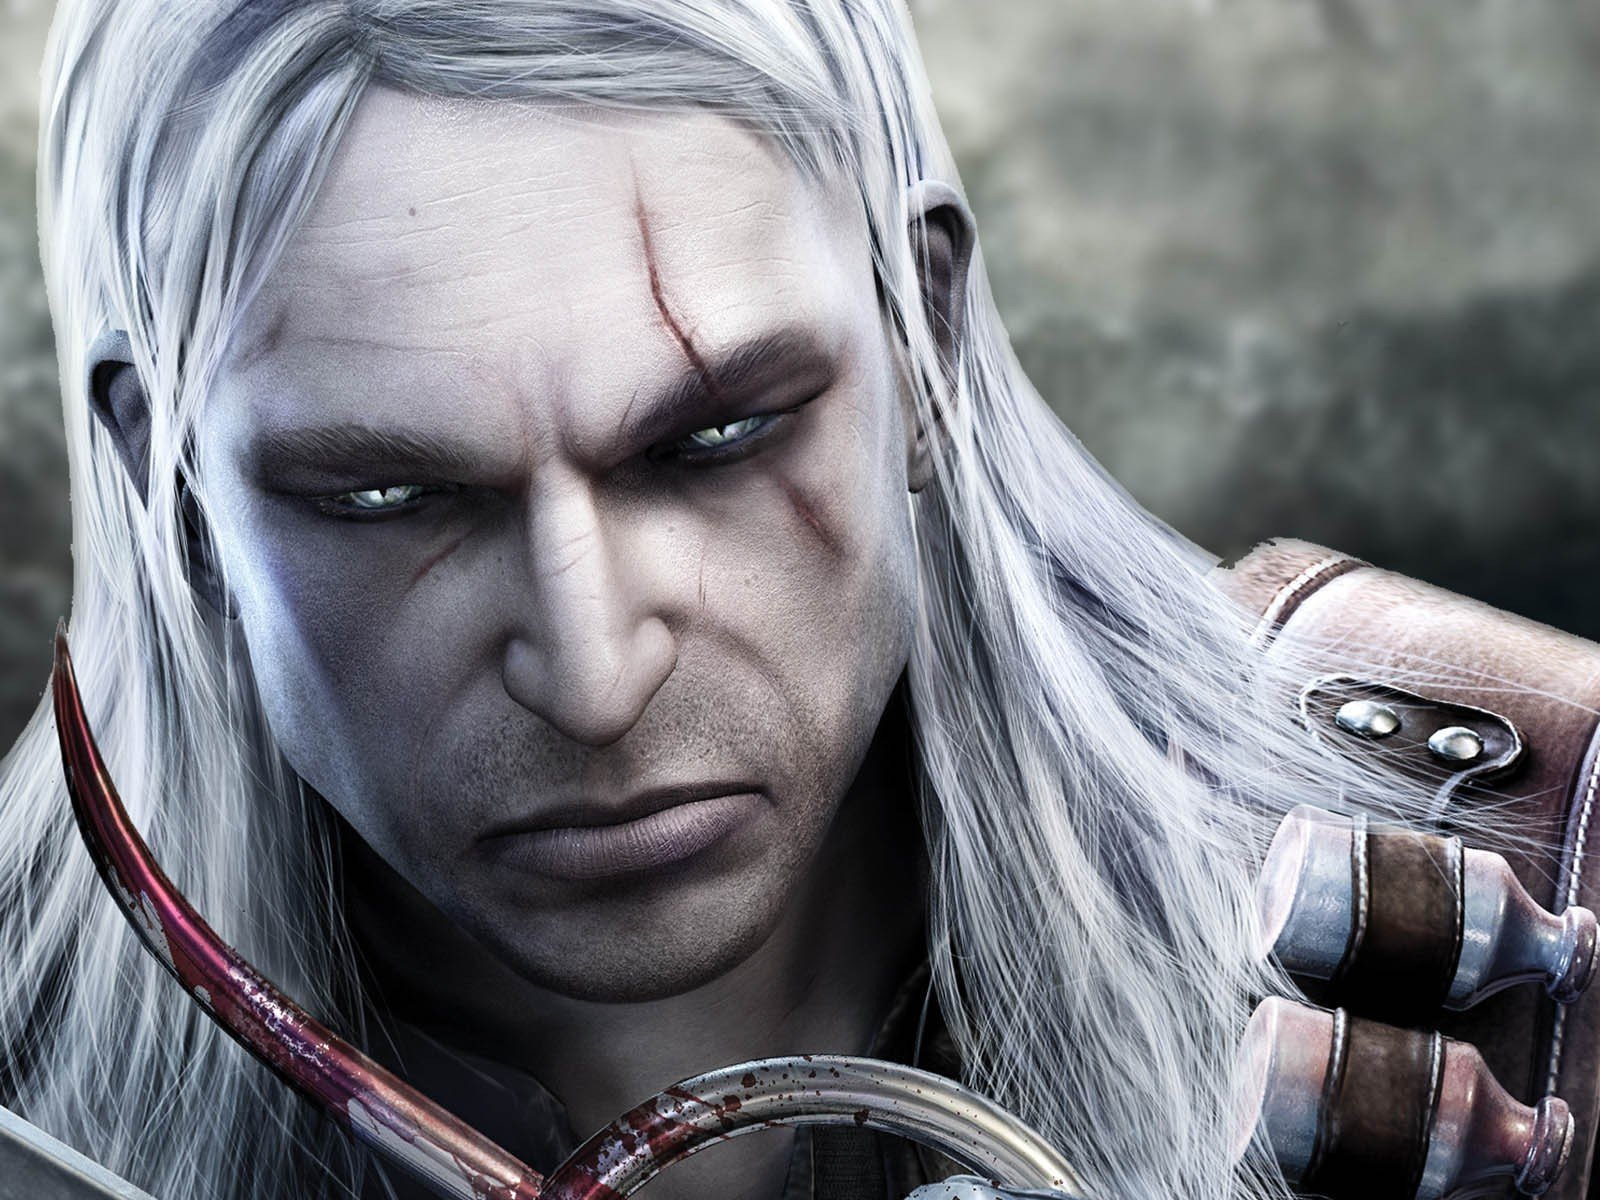 He could give Sindel some hair advice.